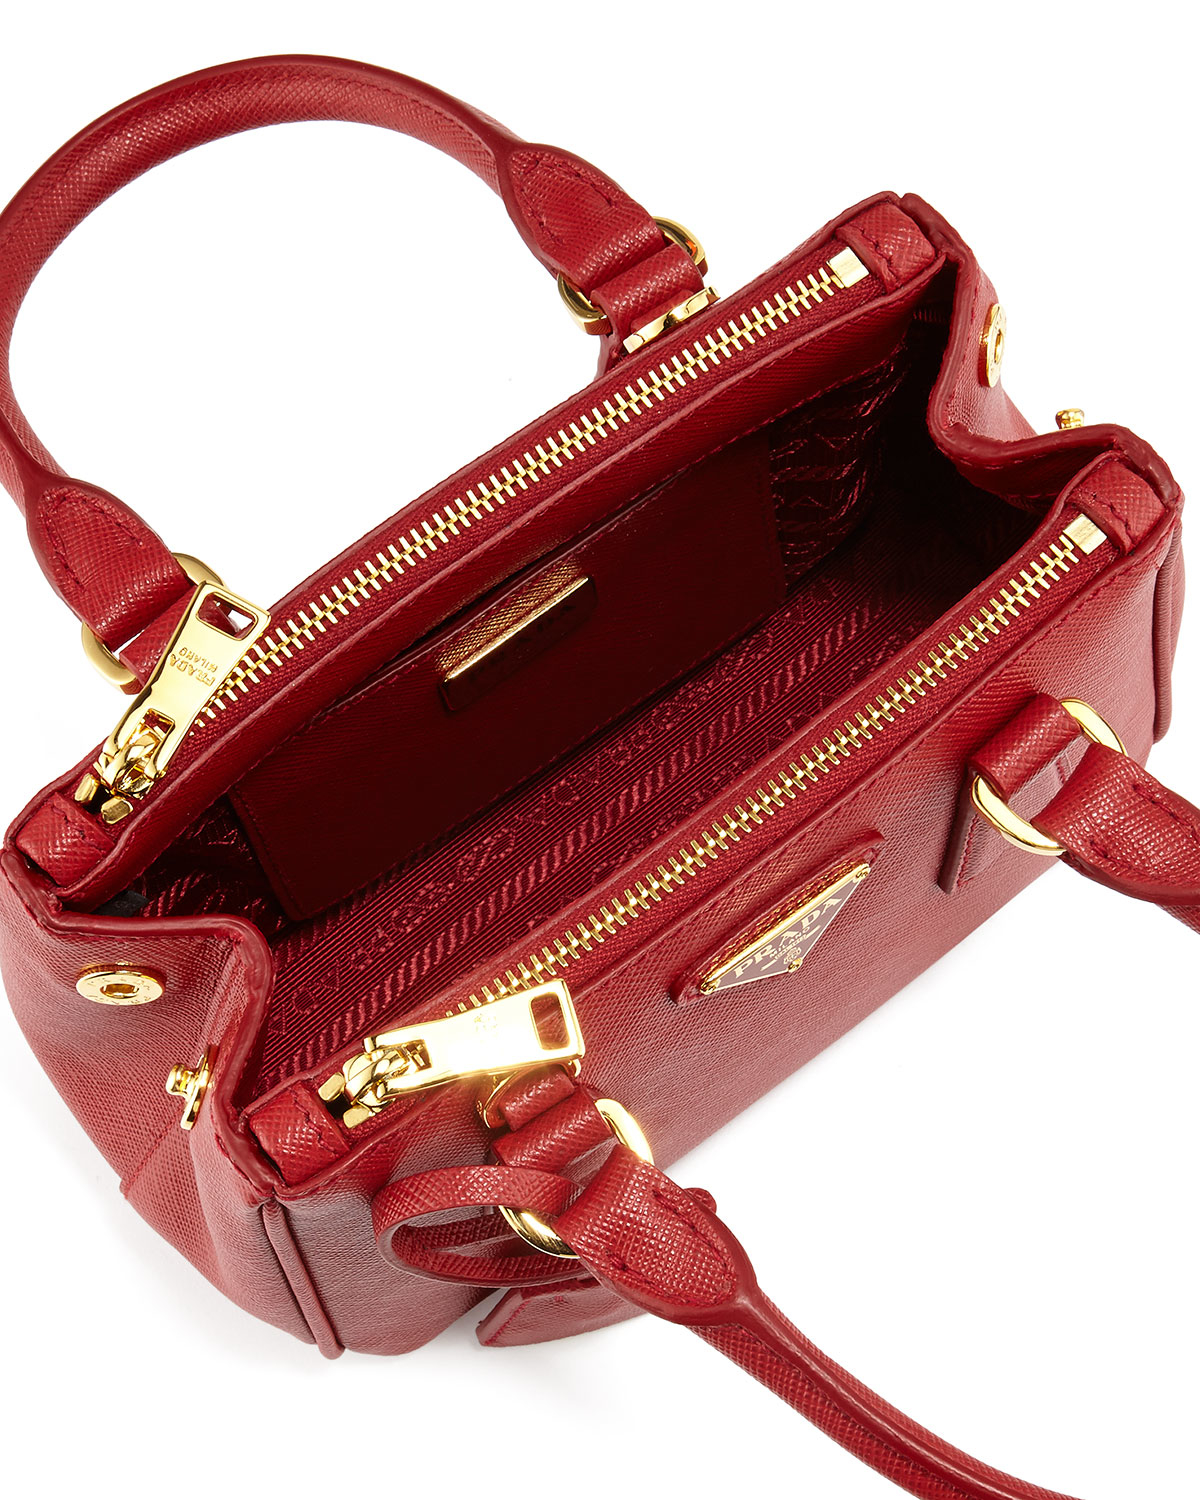 c387df89f8ac ireland red leather prada handbag a04da c7c0b